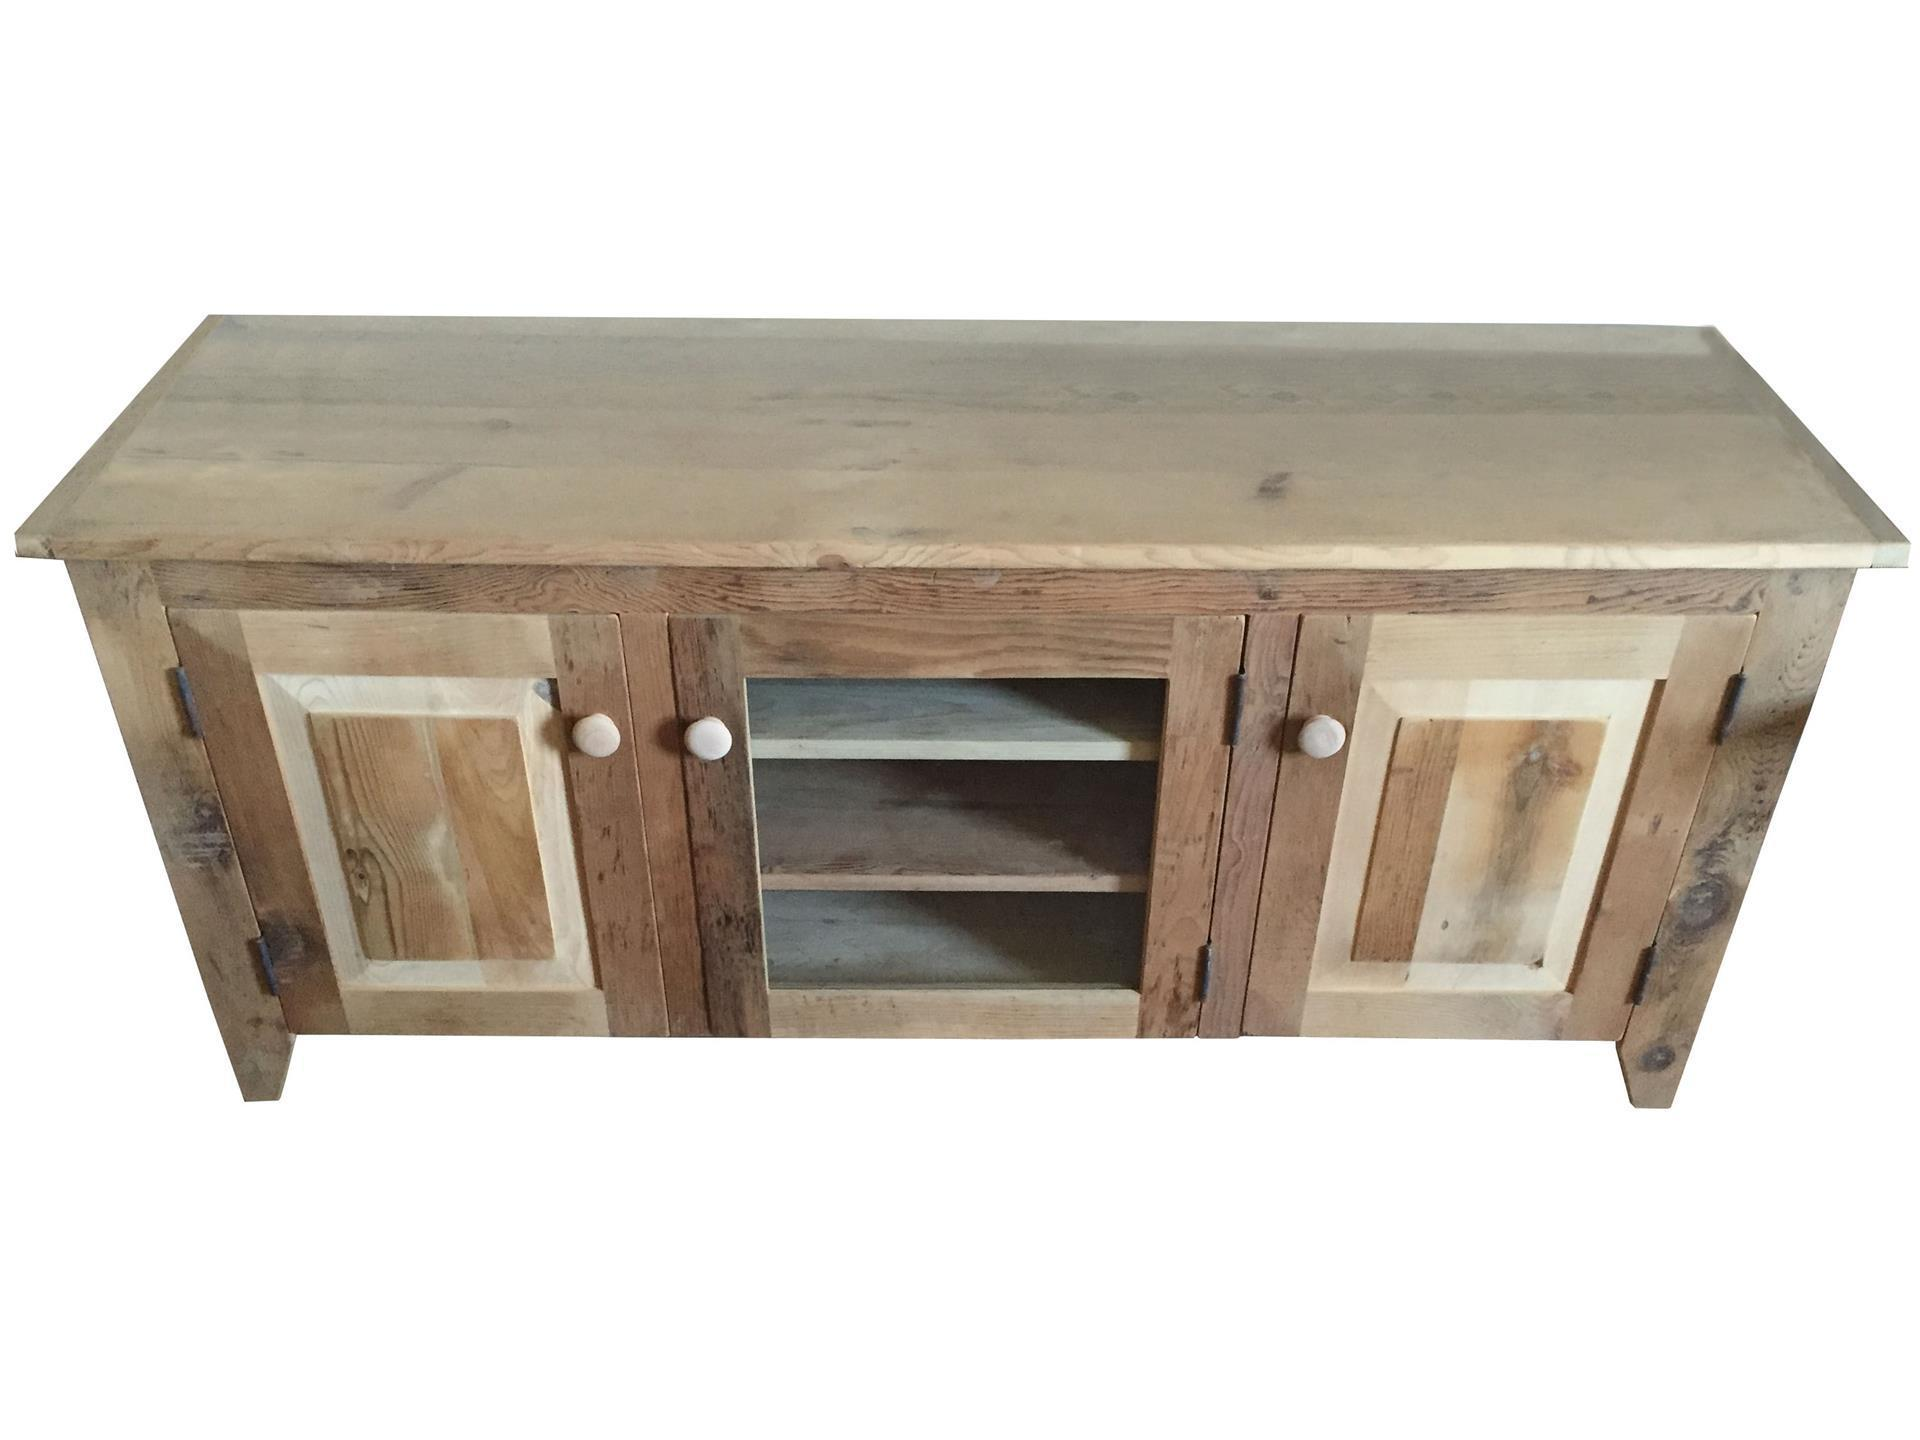 ... U2022 Endearing Rustic Barn Wood Tv Stand Rustic Barn Wood Tv Stand From Dutchcrafters  Amish Furniture Wood